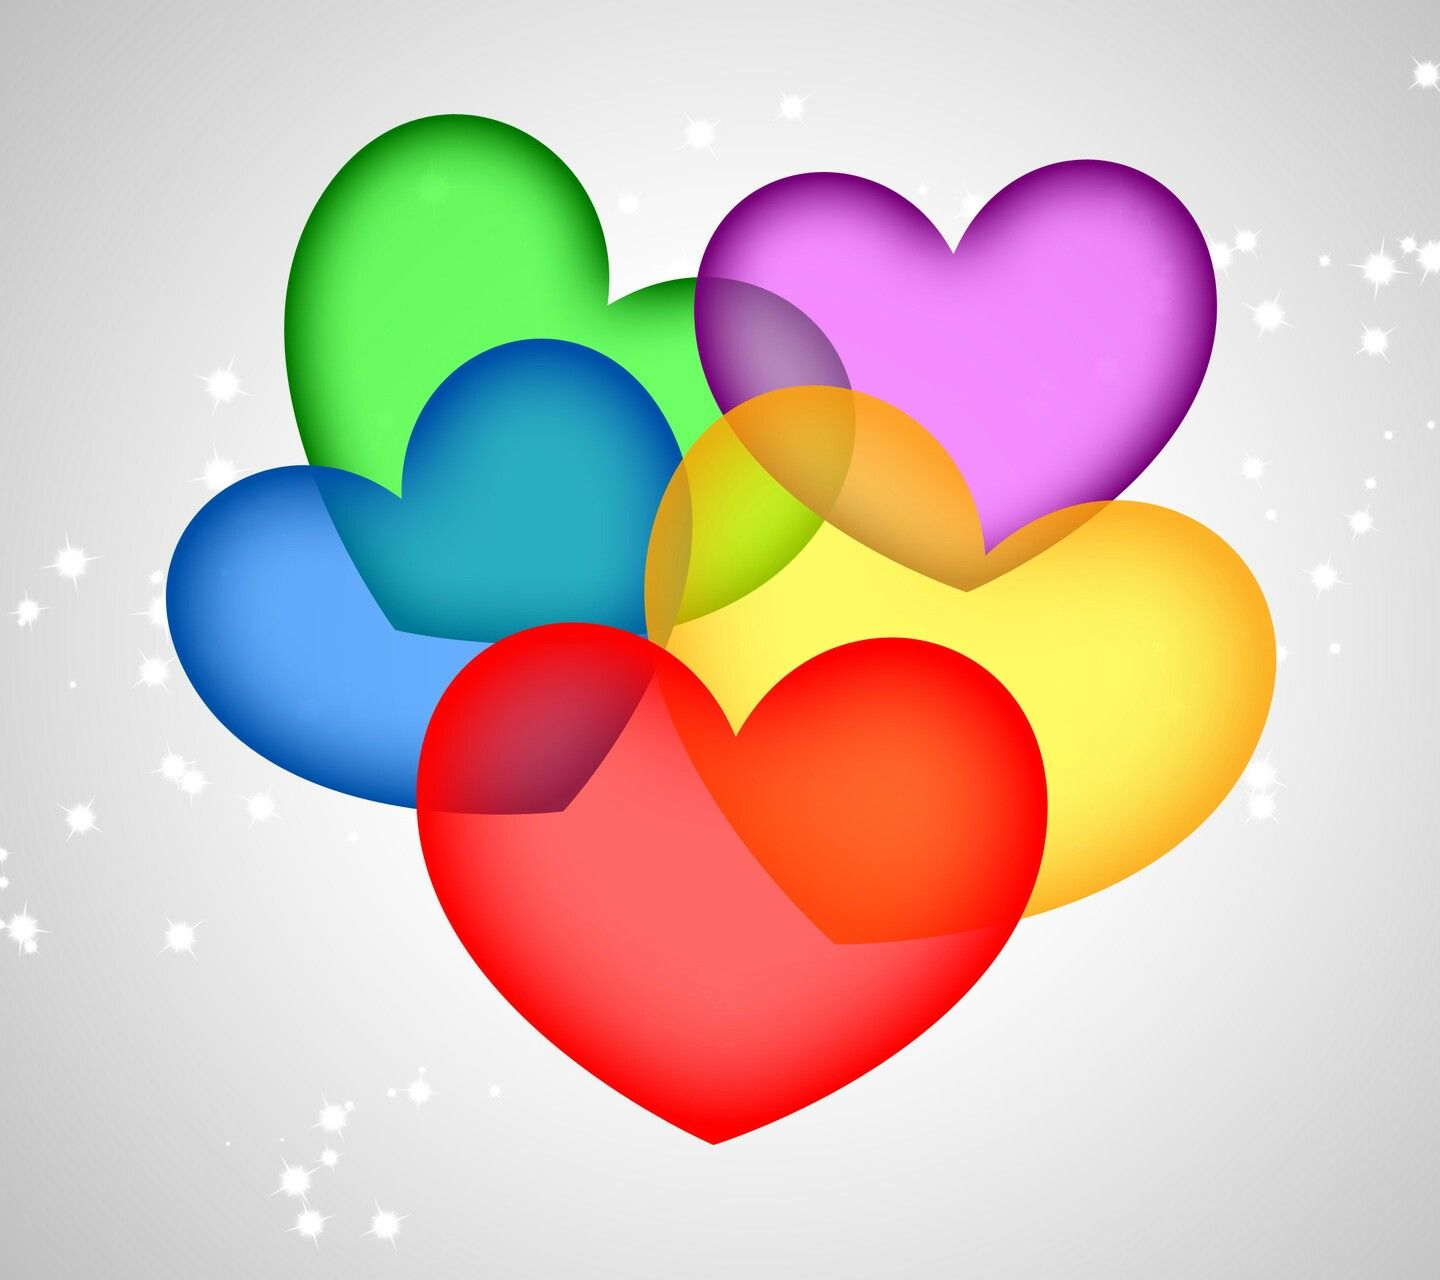 Colorful Heart Wallpaper For Mobile Wallpapersimages Org